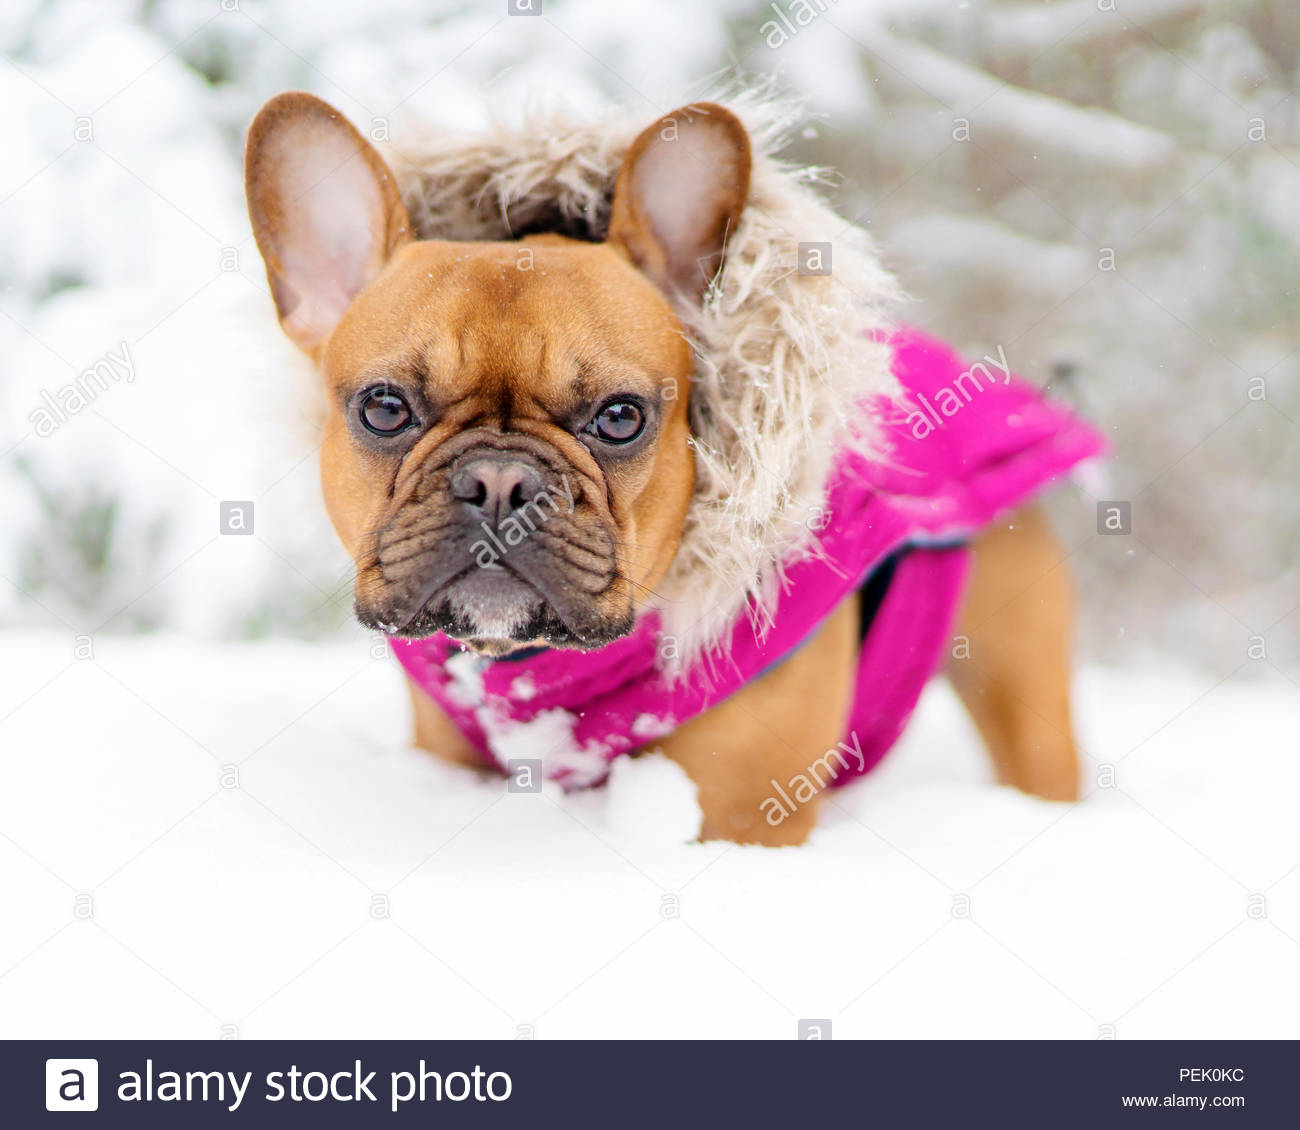 red fawn french bulldog wearing pink parka standing knee deep in snow - Stock Image